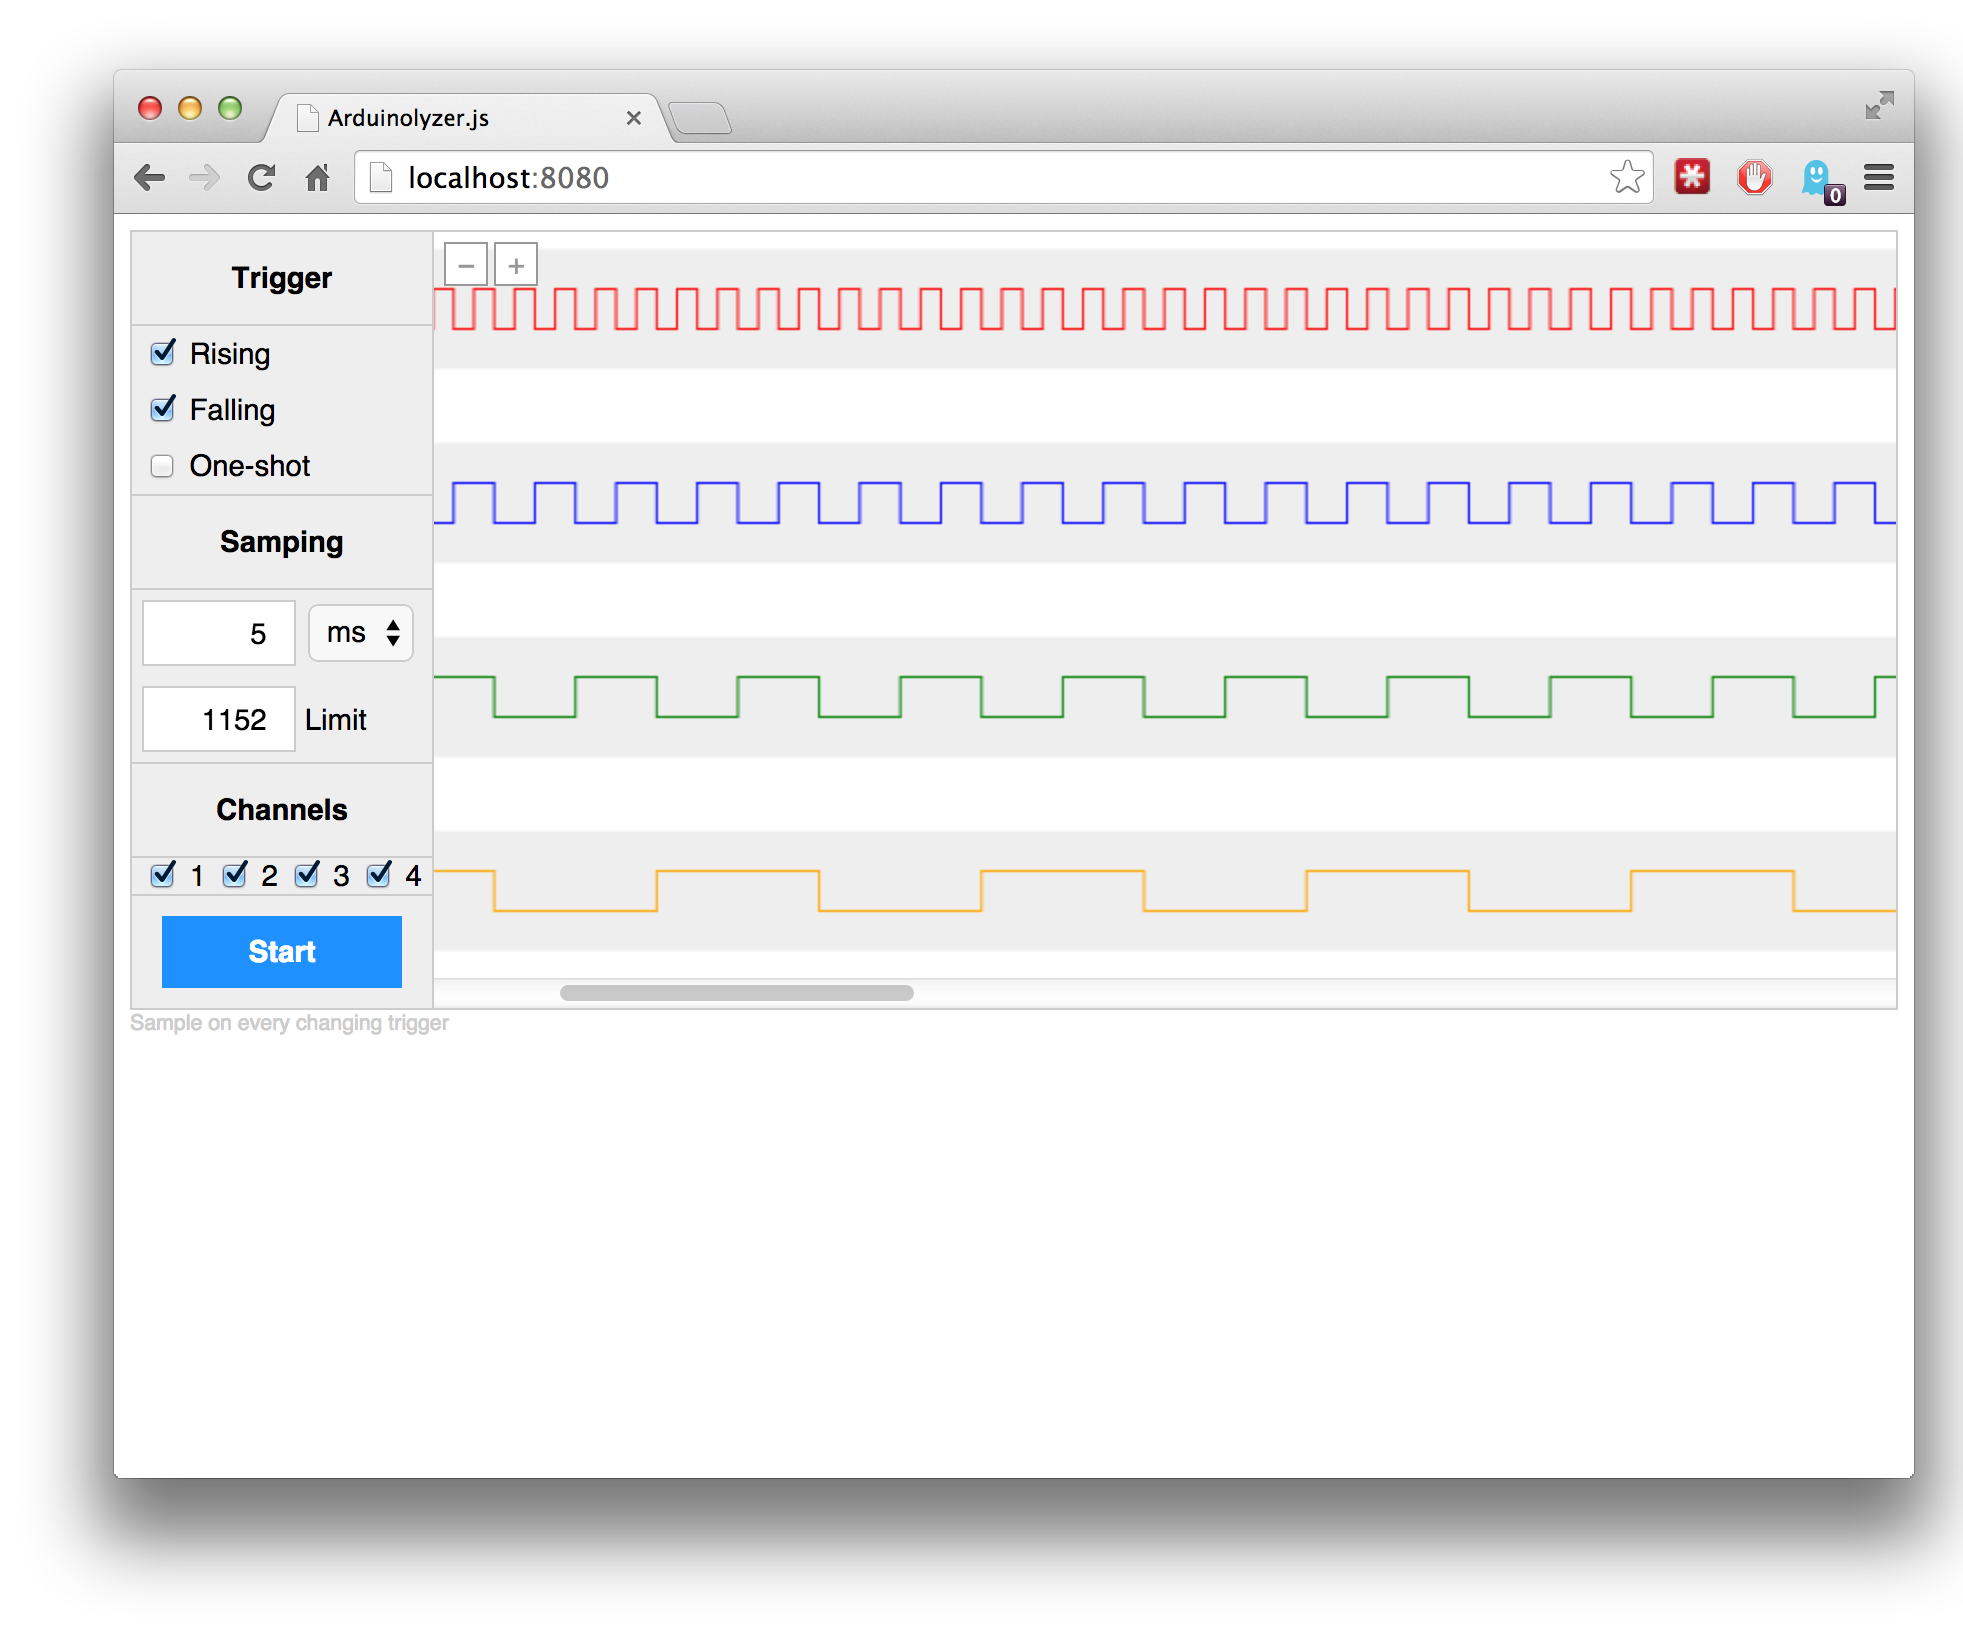 Arduinolyzer.js: Turn your Arduino into a Logic Analyzer